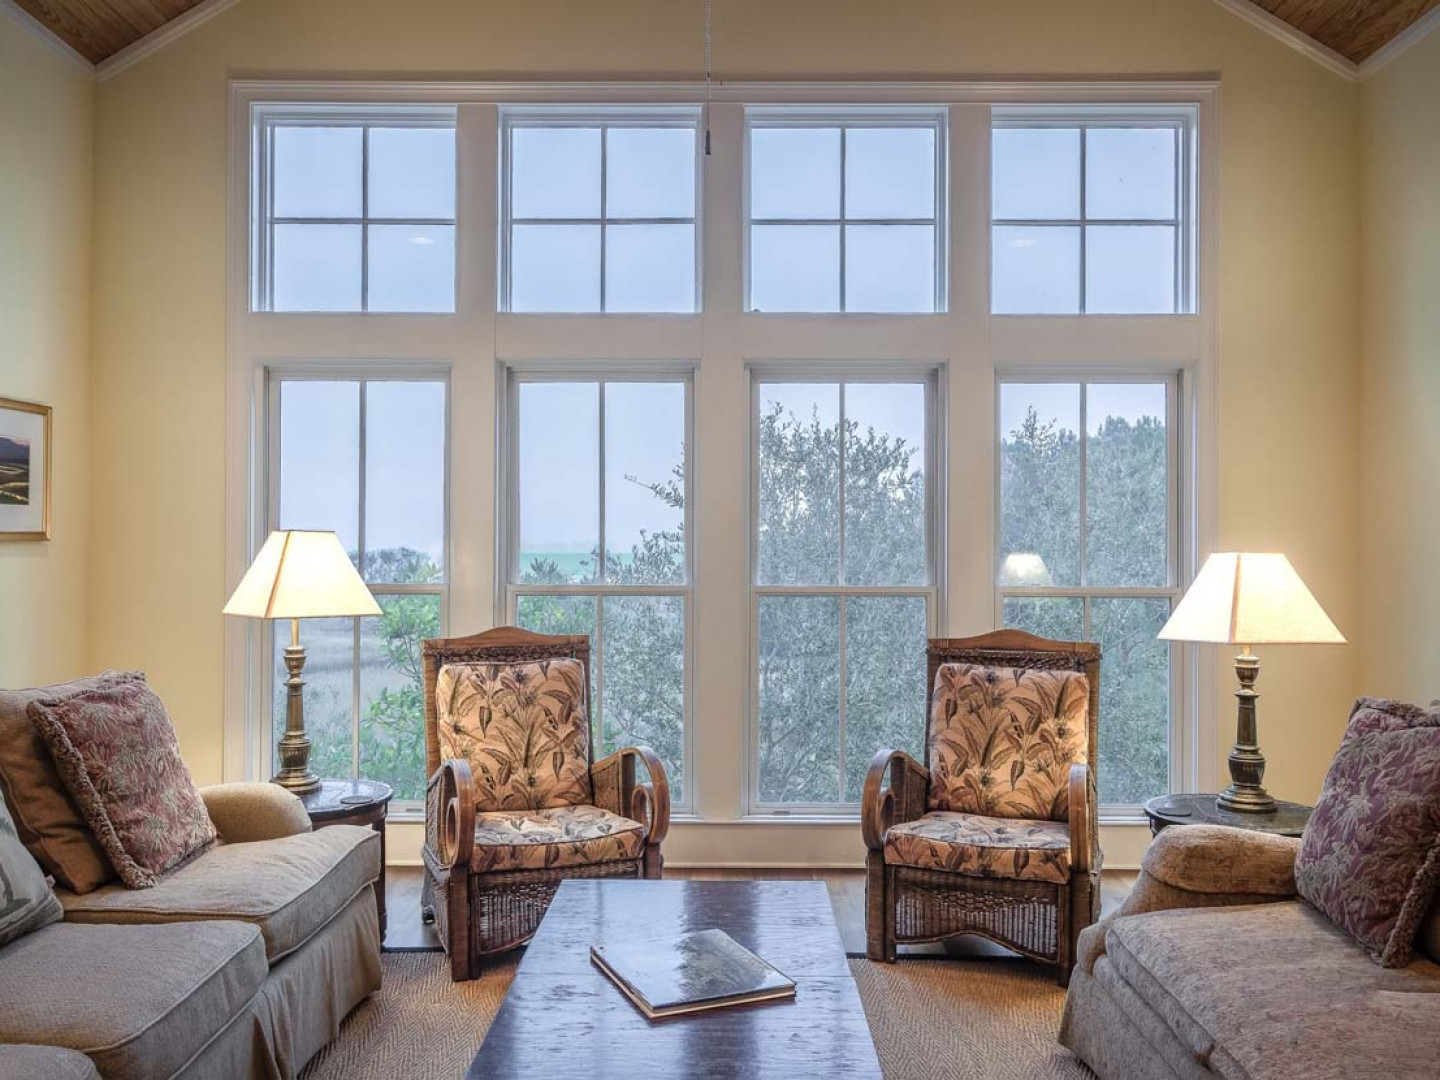 Say Goodbye to Dull, Drafty Windows